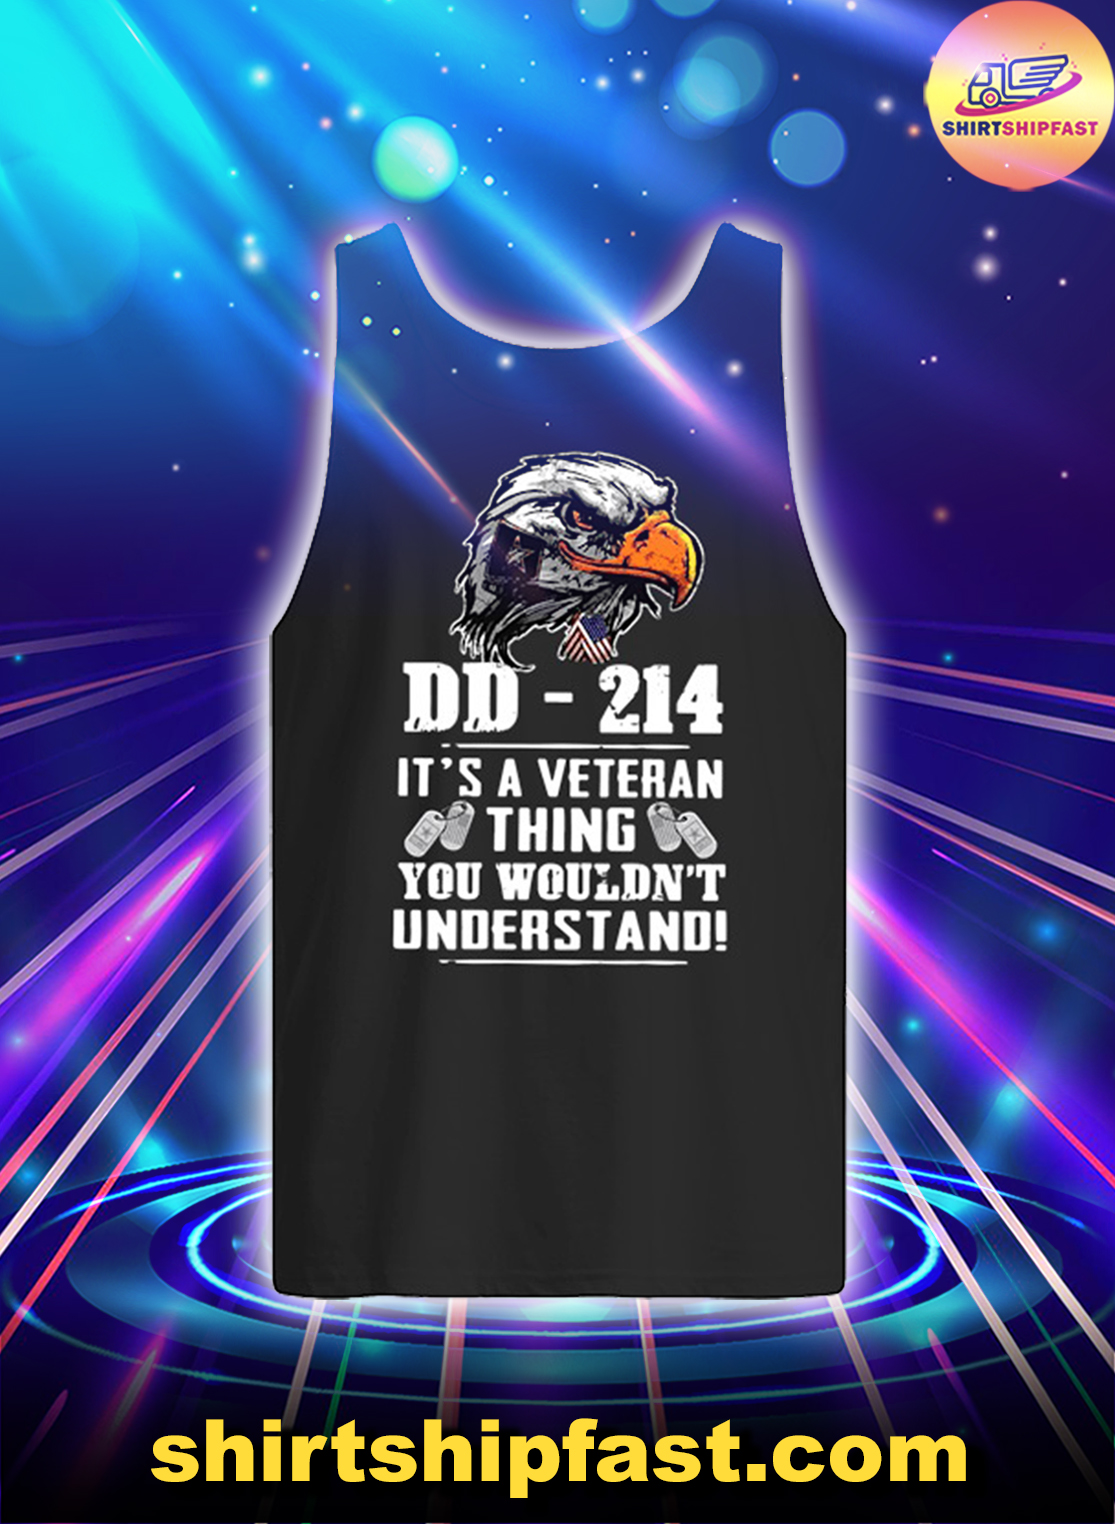 Eagle DD-214 It's a veteran thing you wouldn't understand tank top